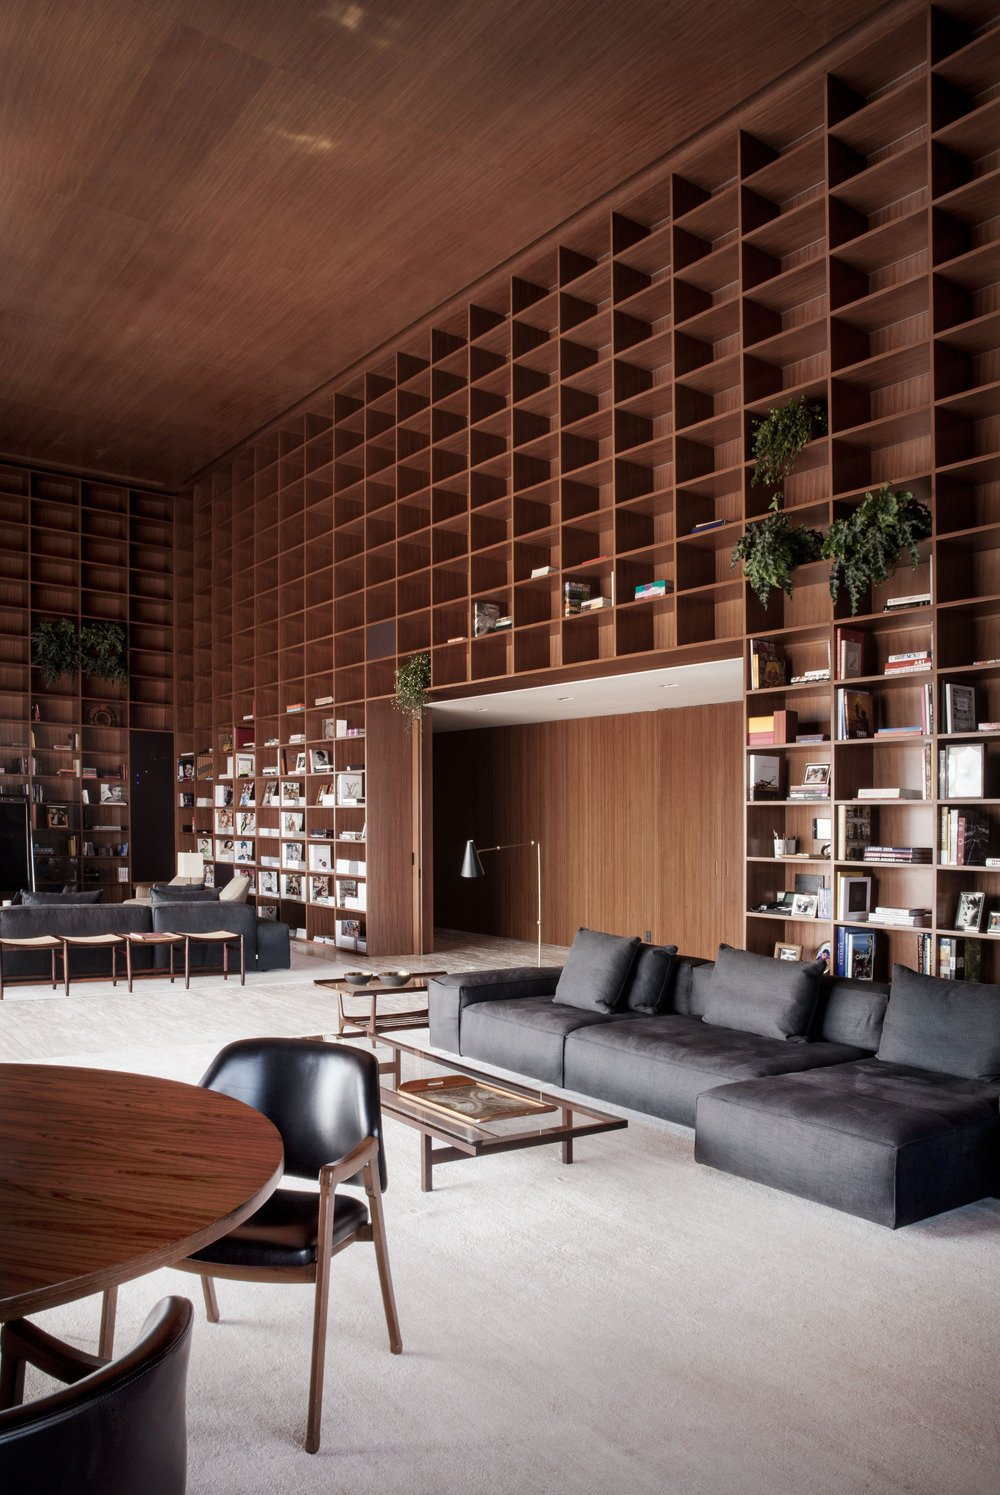 #library #sectional #bookshelves #reading #relaxing #storagegoals Photo by Jonas Bjerre-Poulsen 30+ Modern Homes With Libraries by Matthew Keeshin